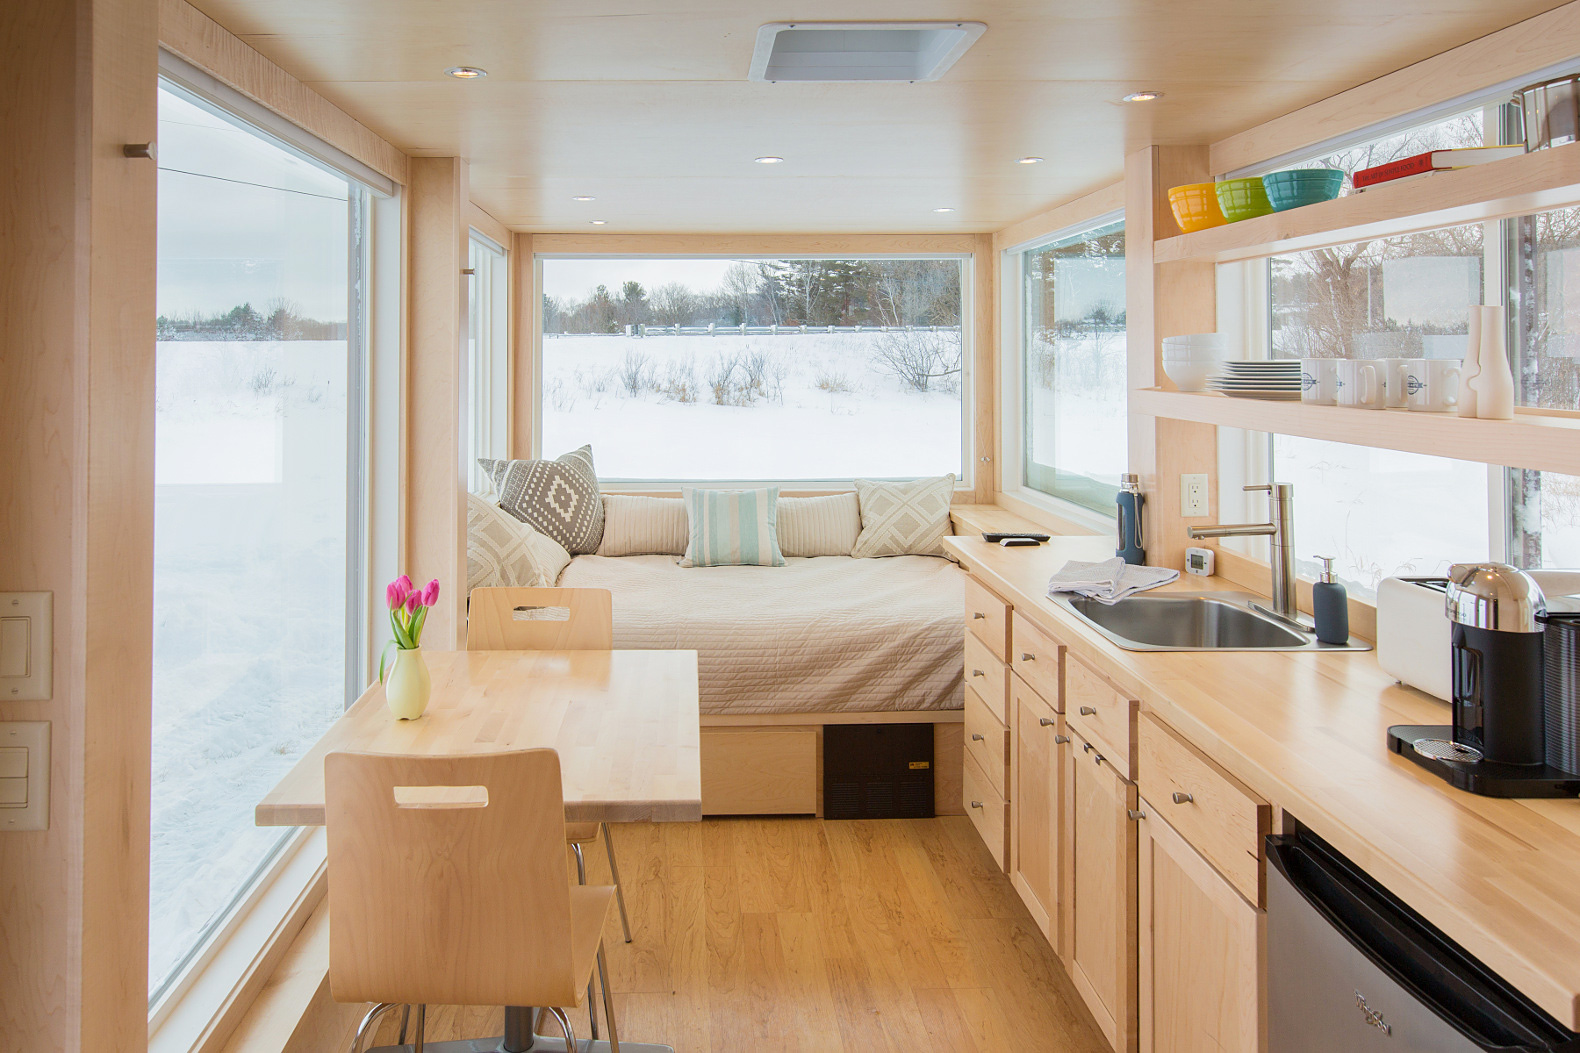 A tiny trailer home like no other adorable home - Home design small spaces ideas collection ...